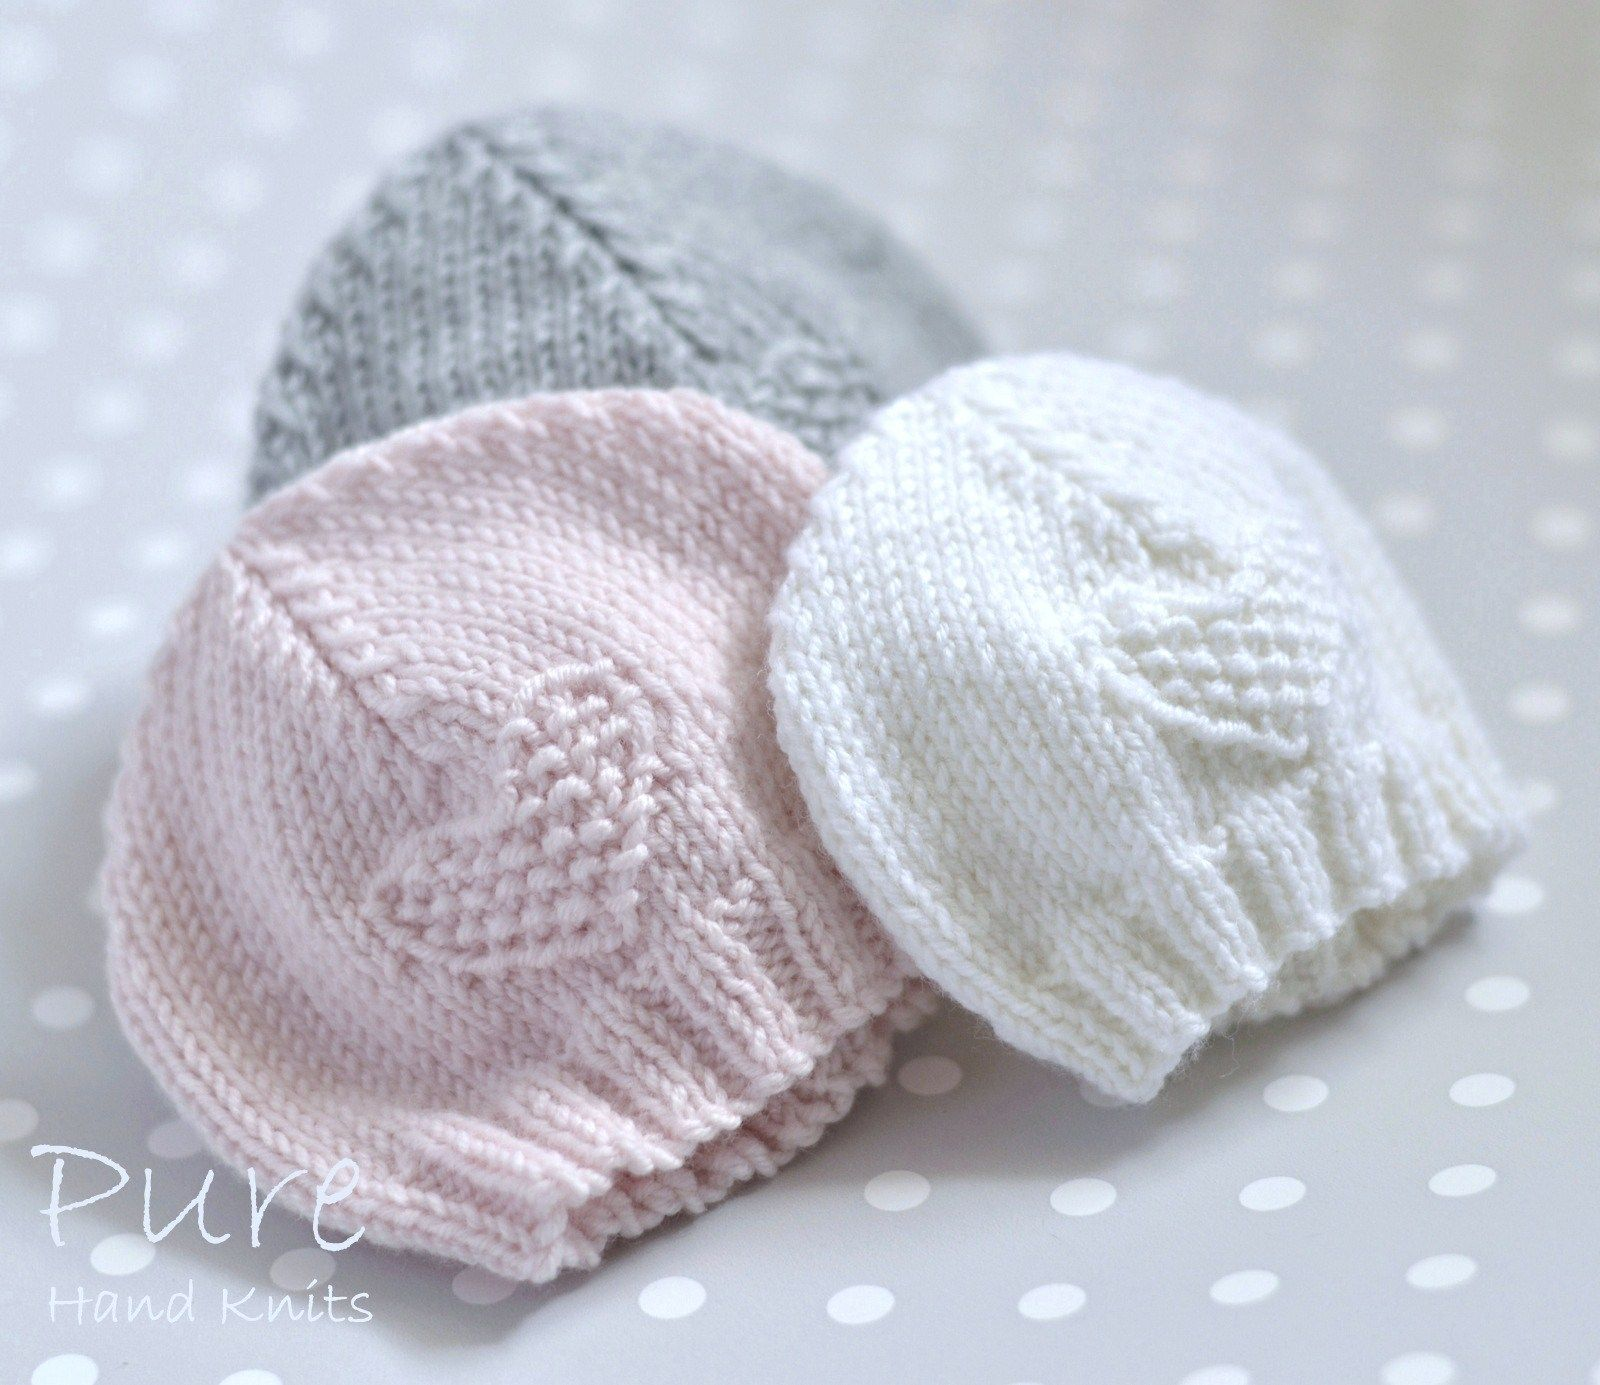 I wanted to design a simple baby hat that is easy and quick to knit ...